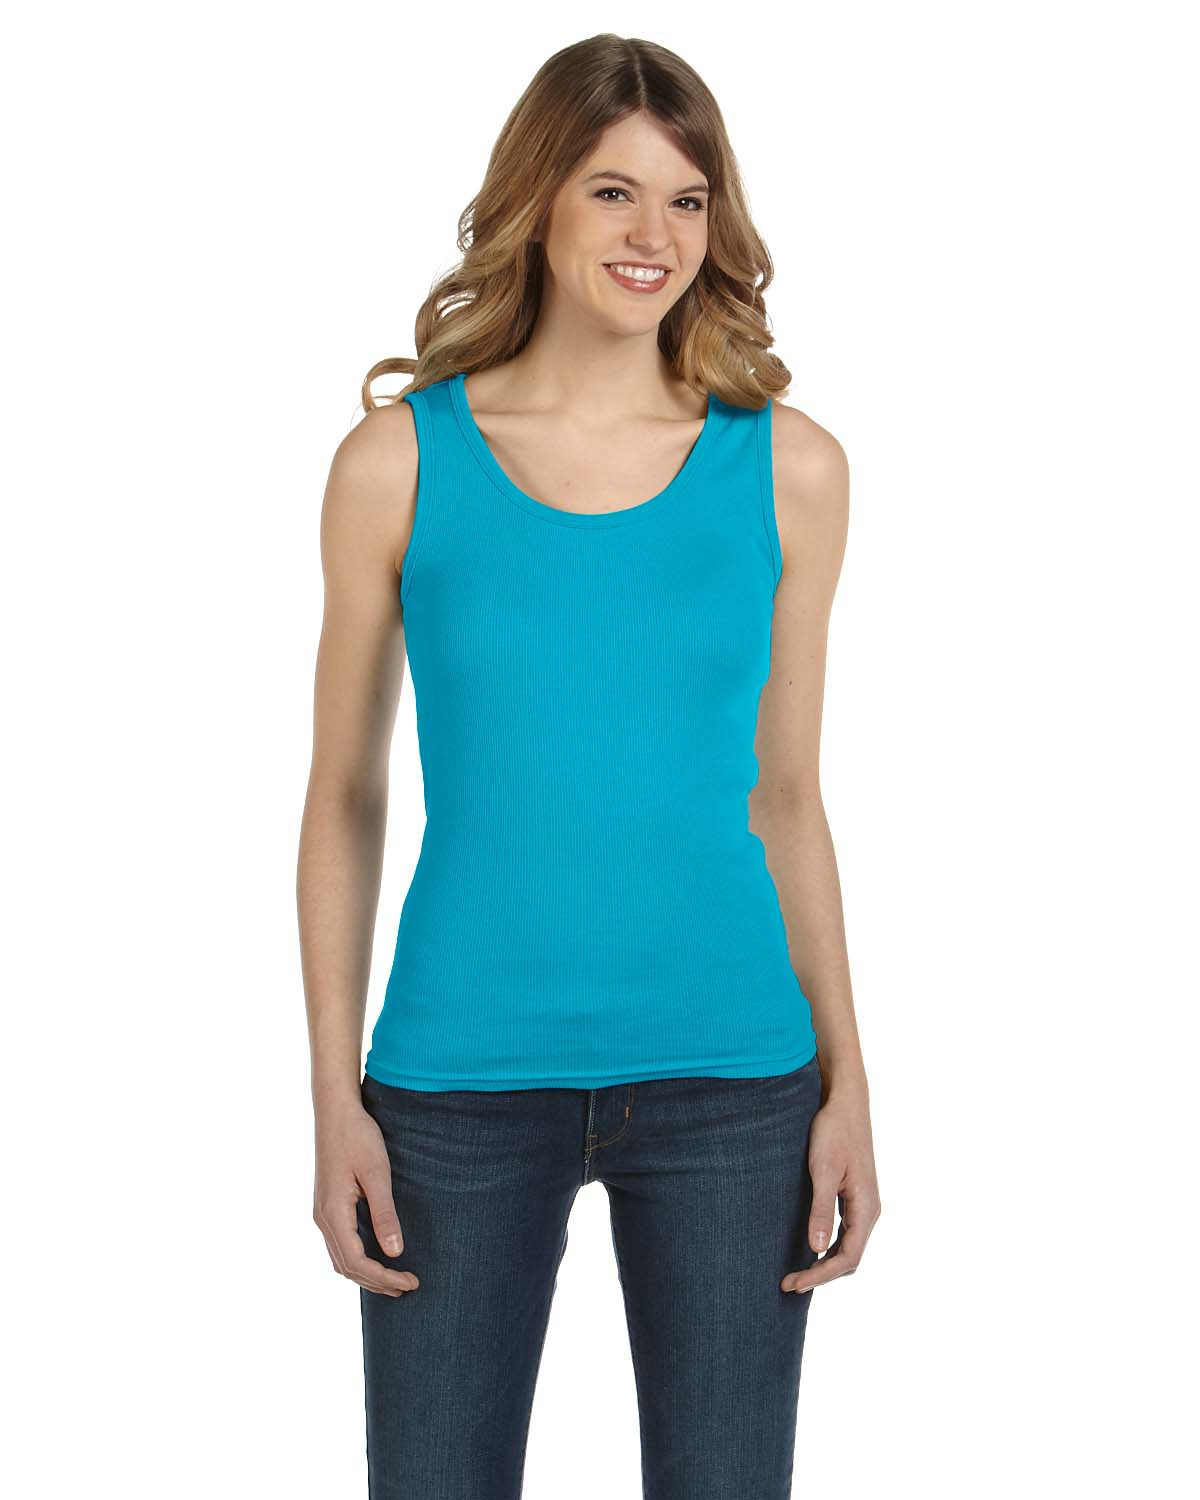 Anvil 2415  Women's Ringspun 2x1 Rib Tank